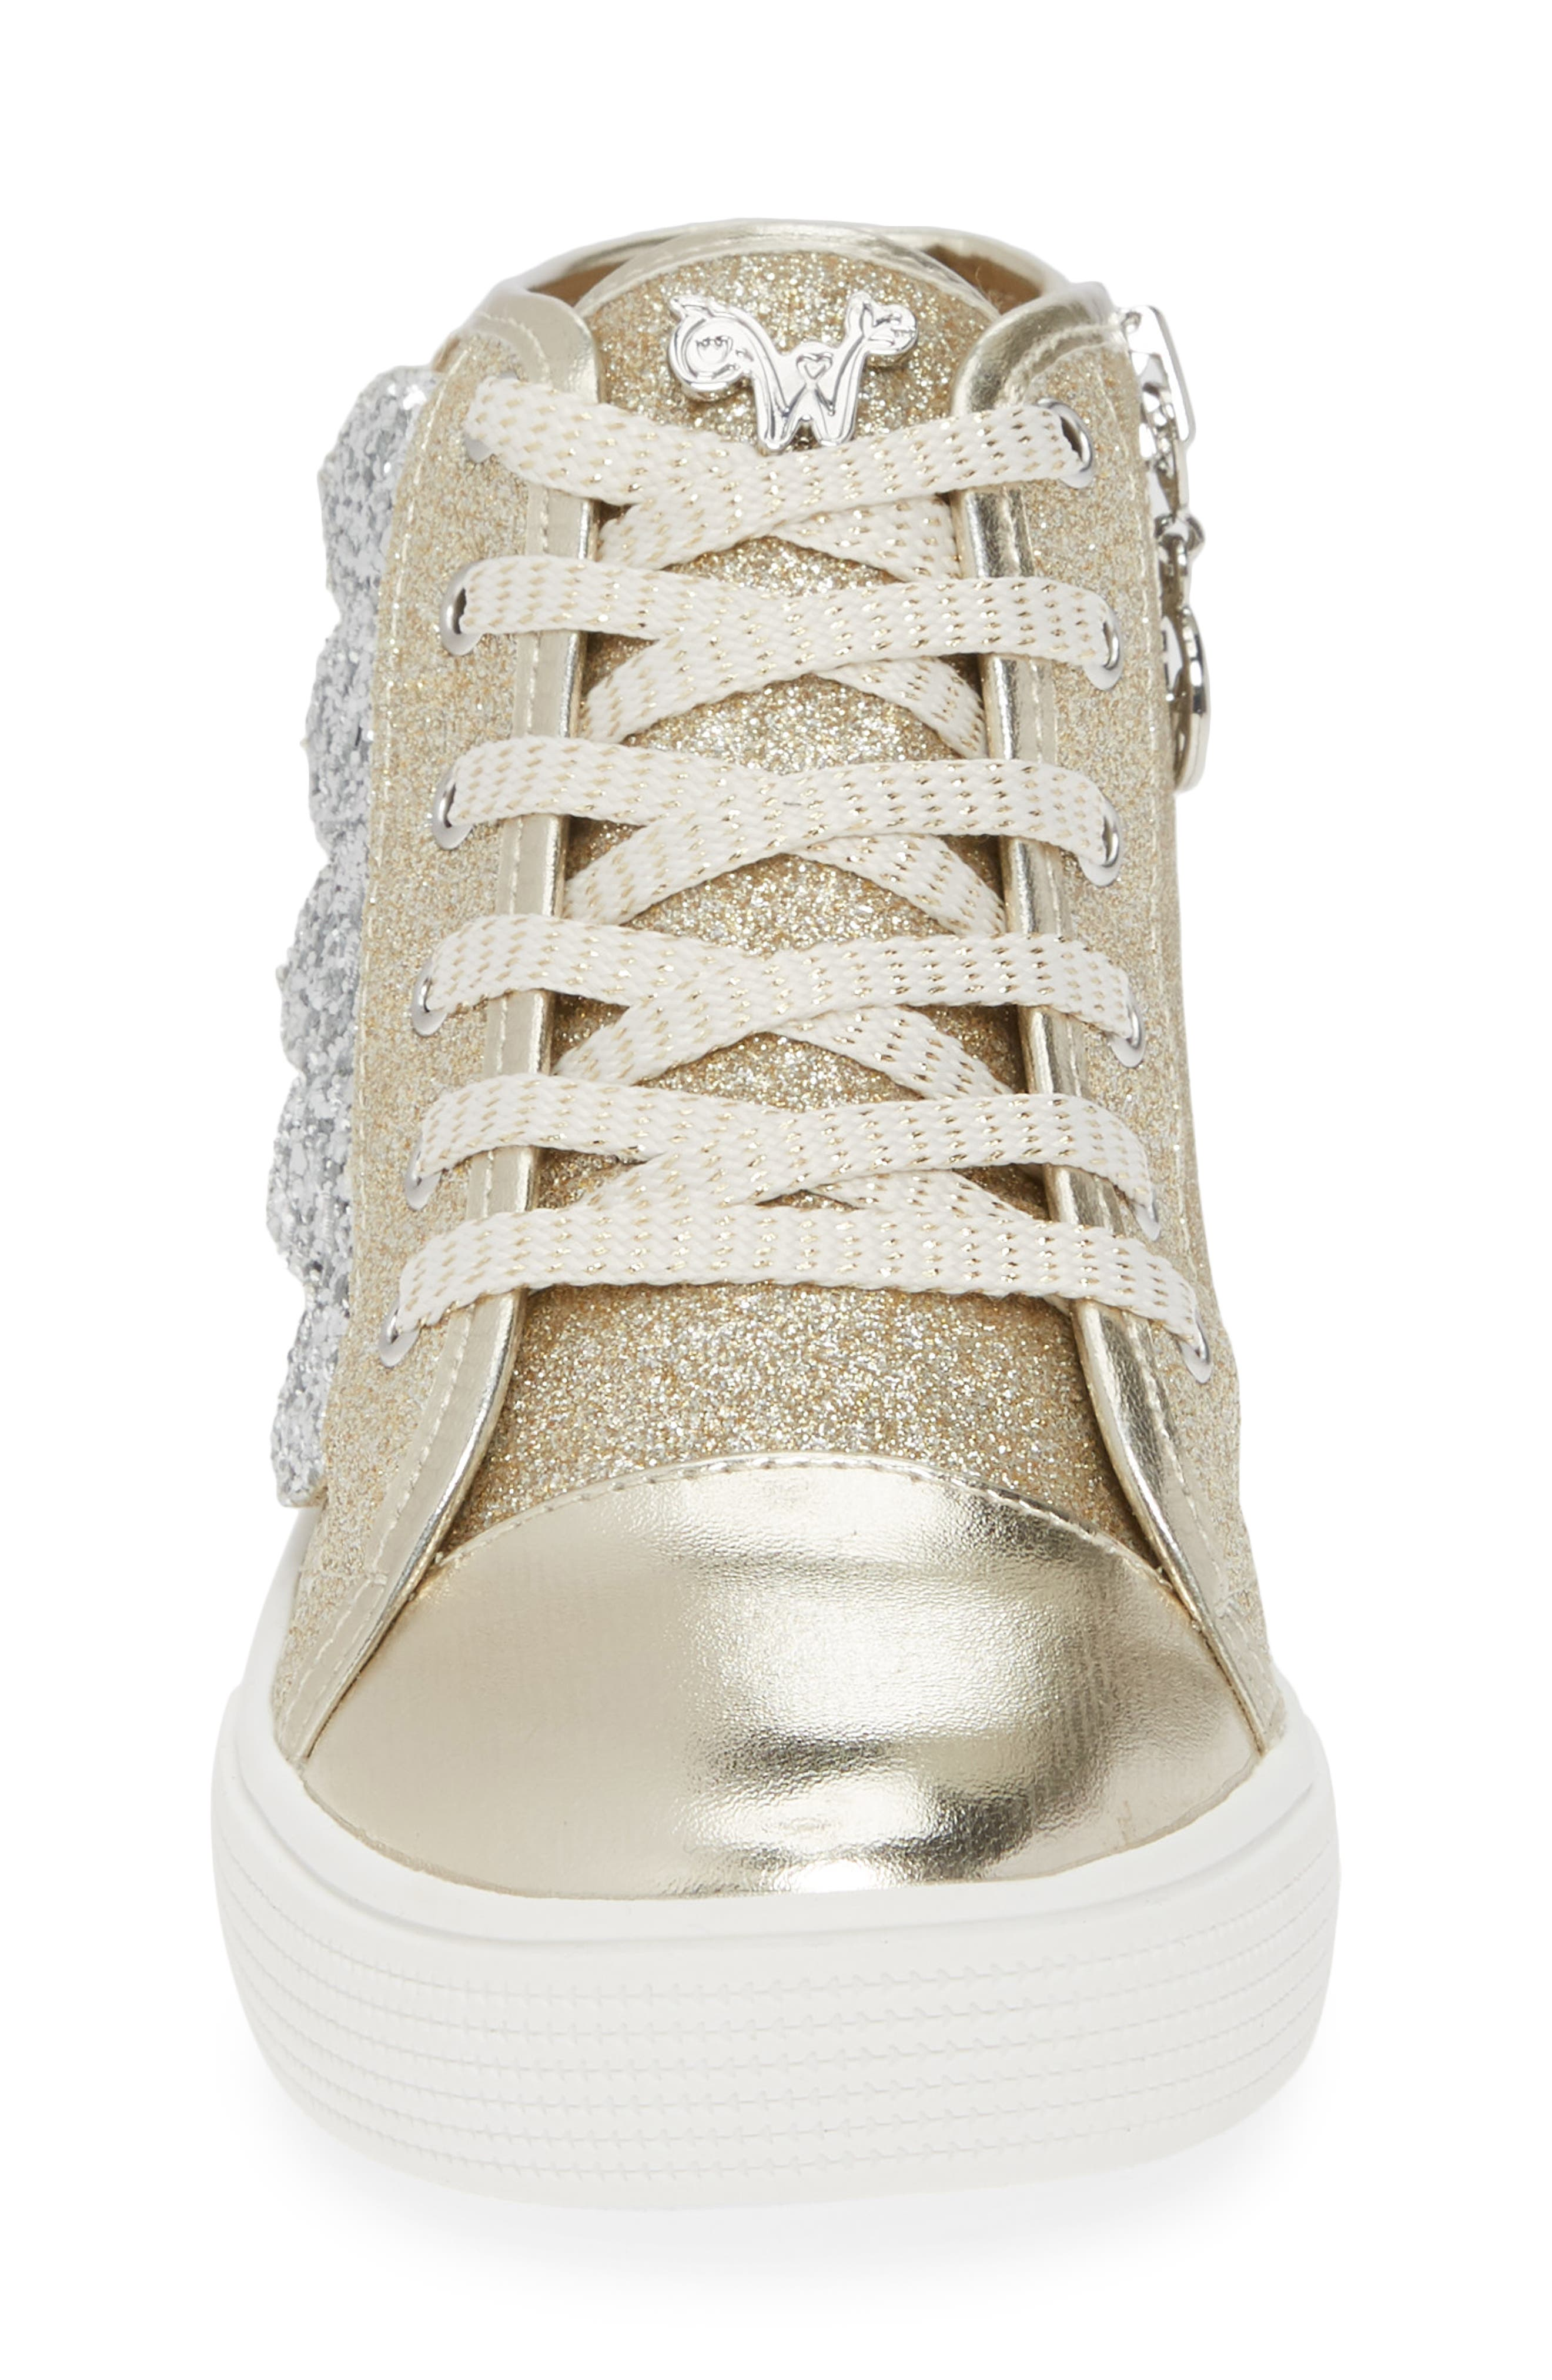 Willa Winged Glitter High Top Sneaker,                             Alternate thumbnail 4, color,                             SOFT GOLD SILVER